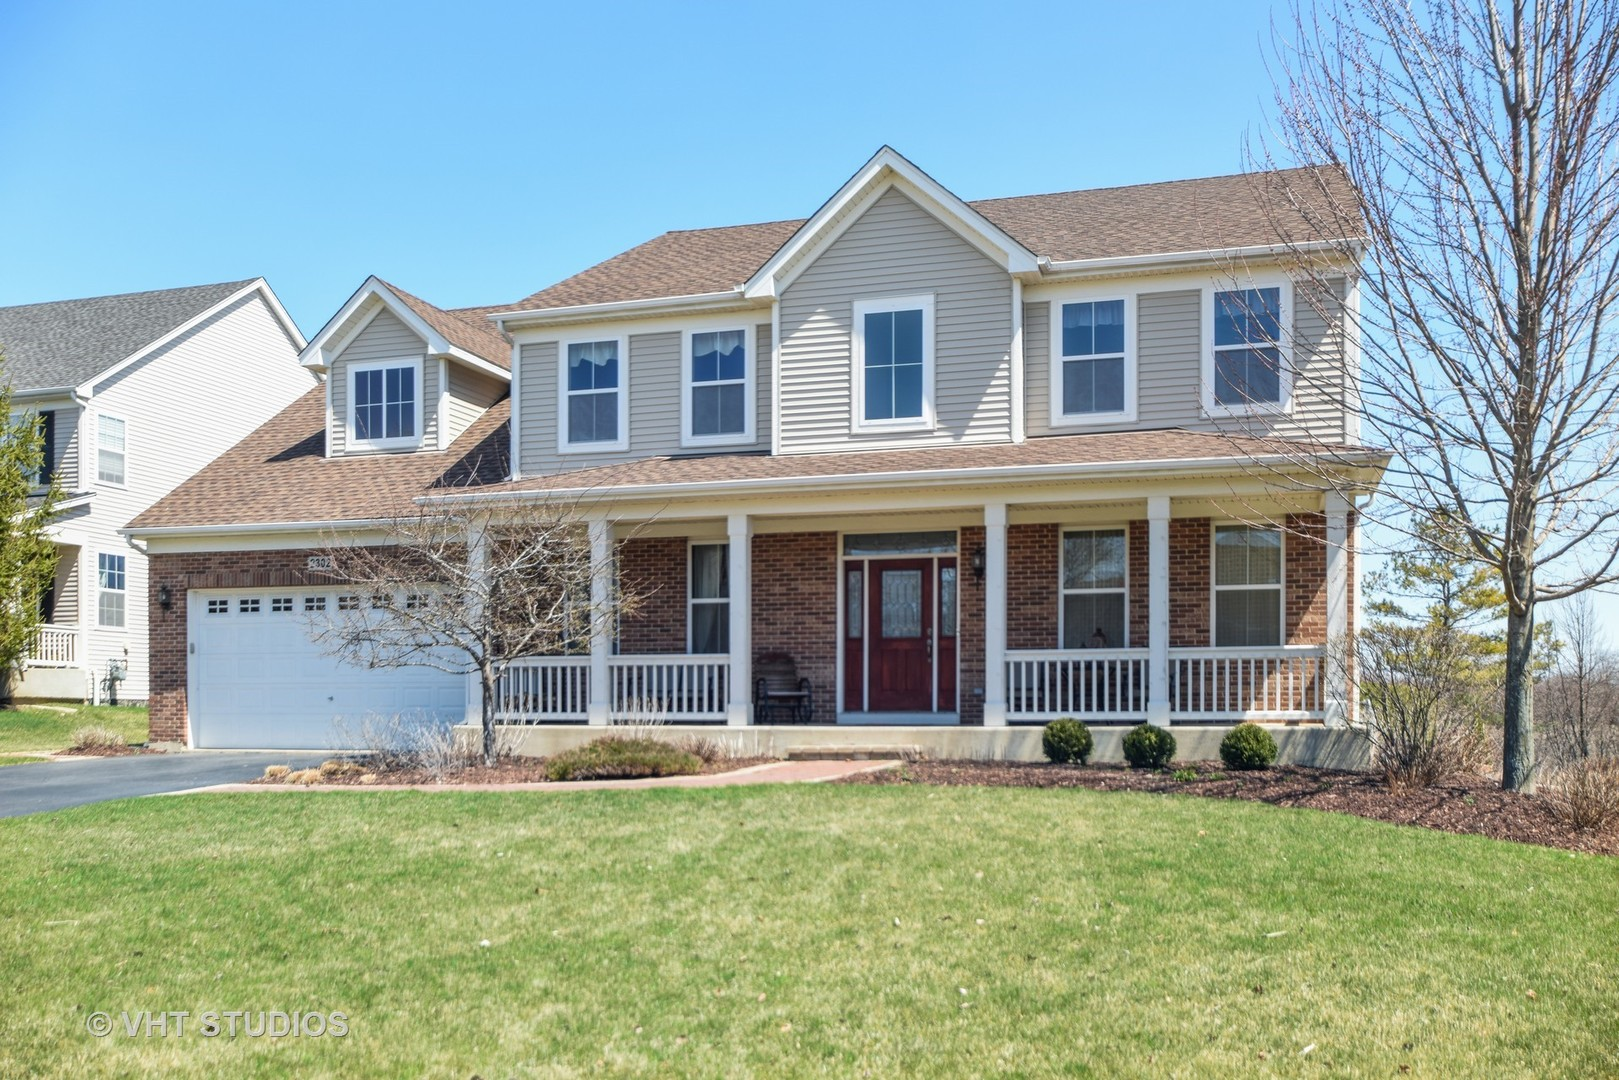 2302 Bluewater Drive, Wauconda, Illinois 60084